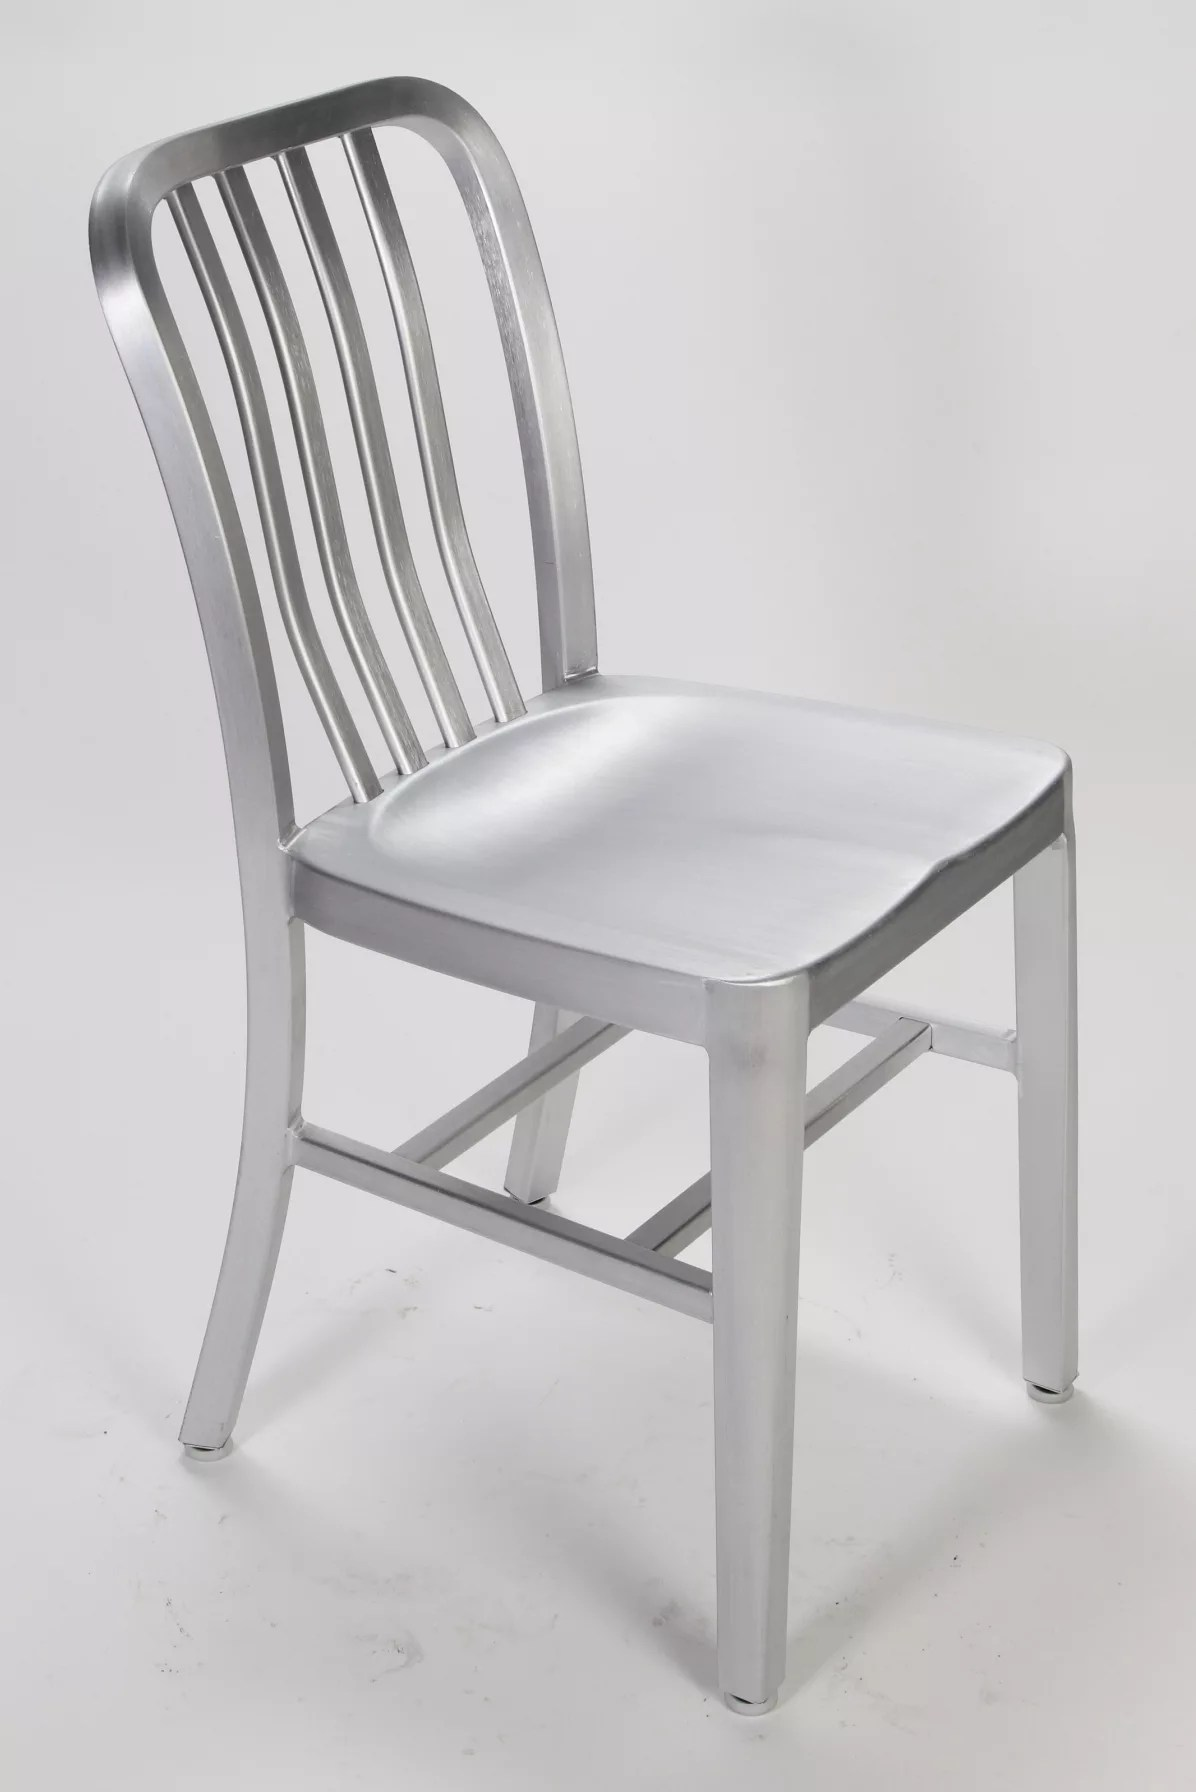 Restaurant Chairs Aluminum Restaurant Chairs 12 Reasons To Choose